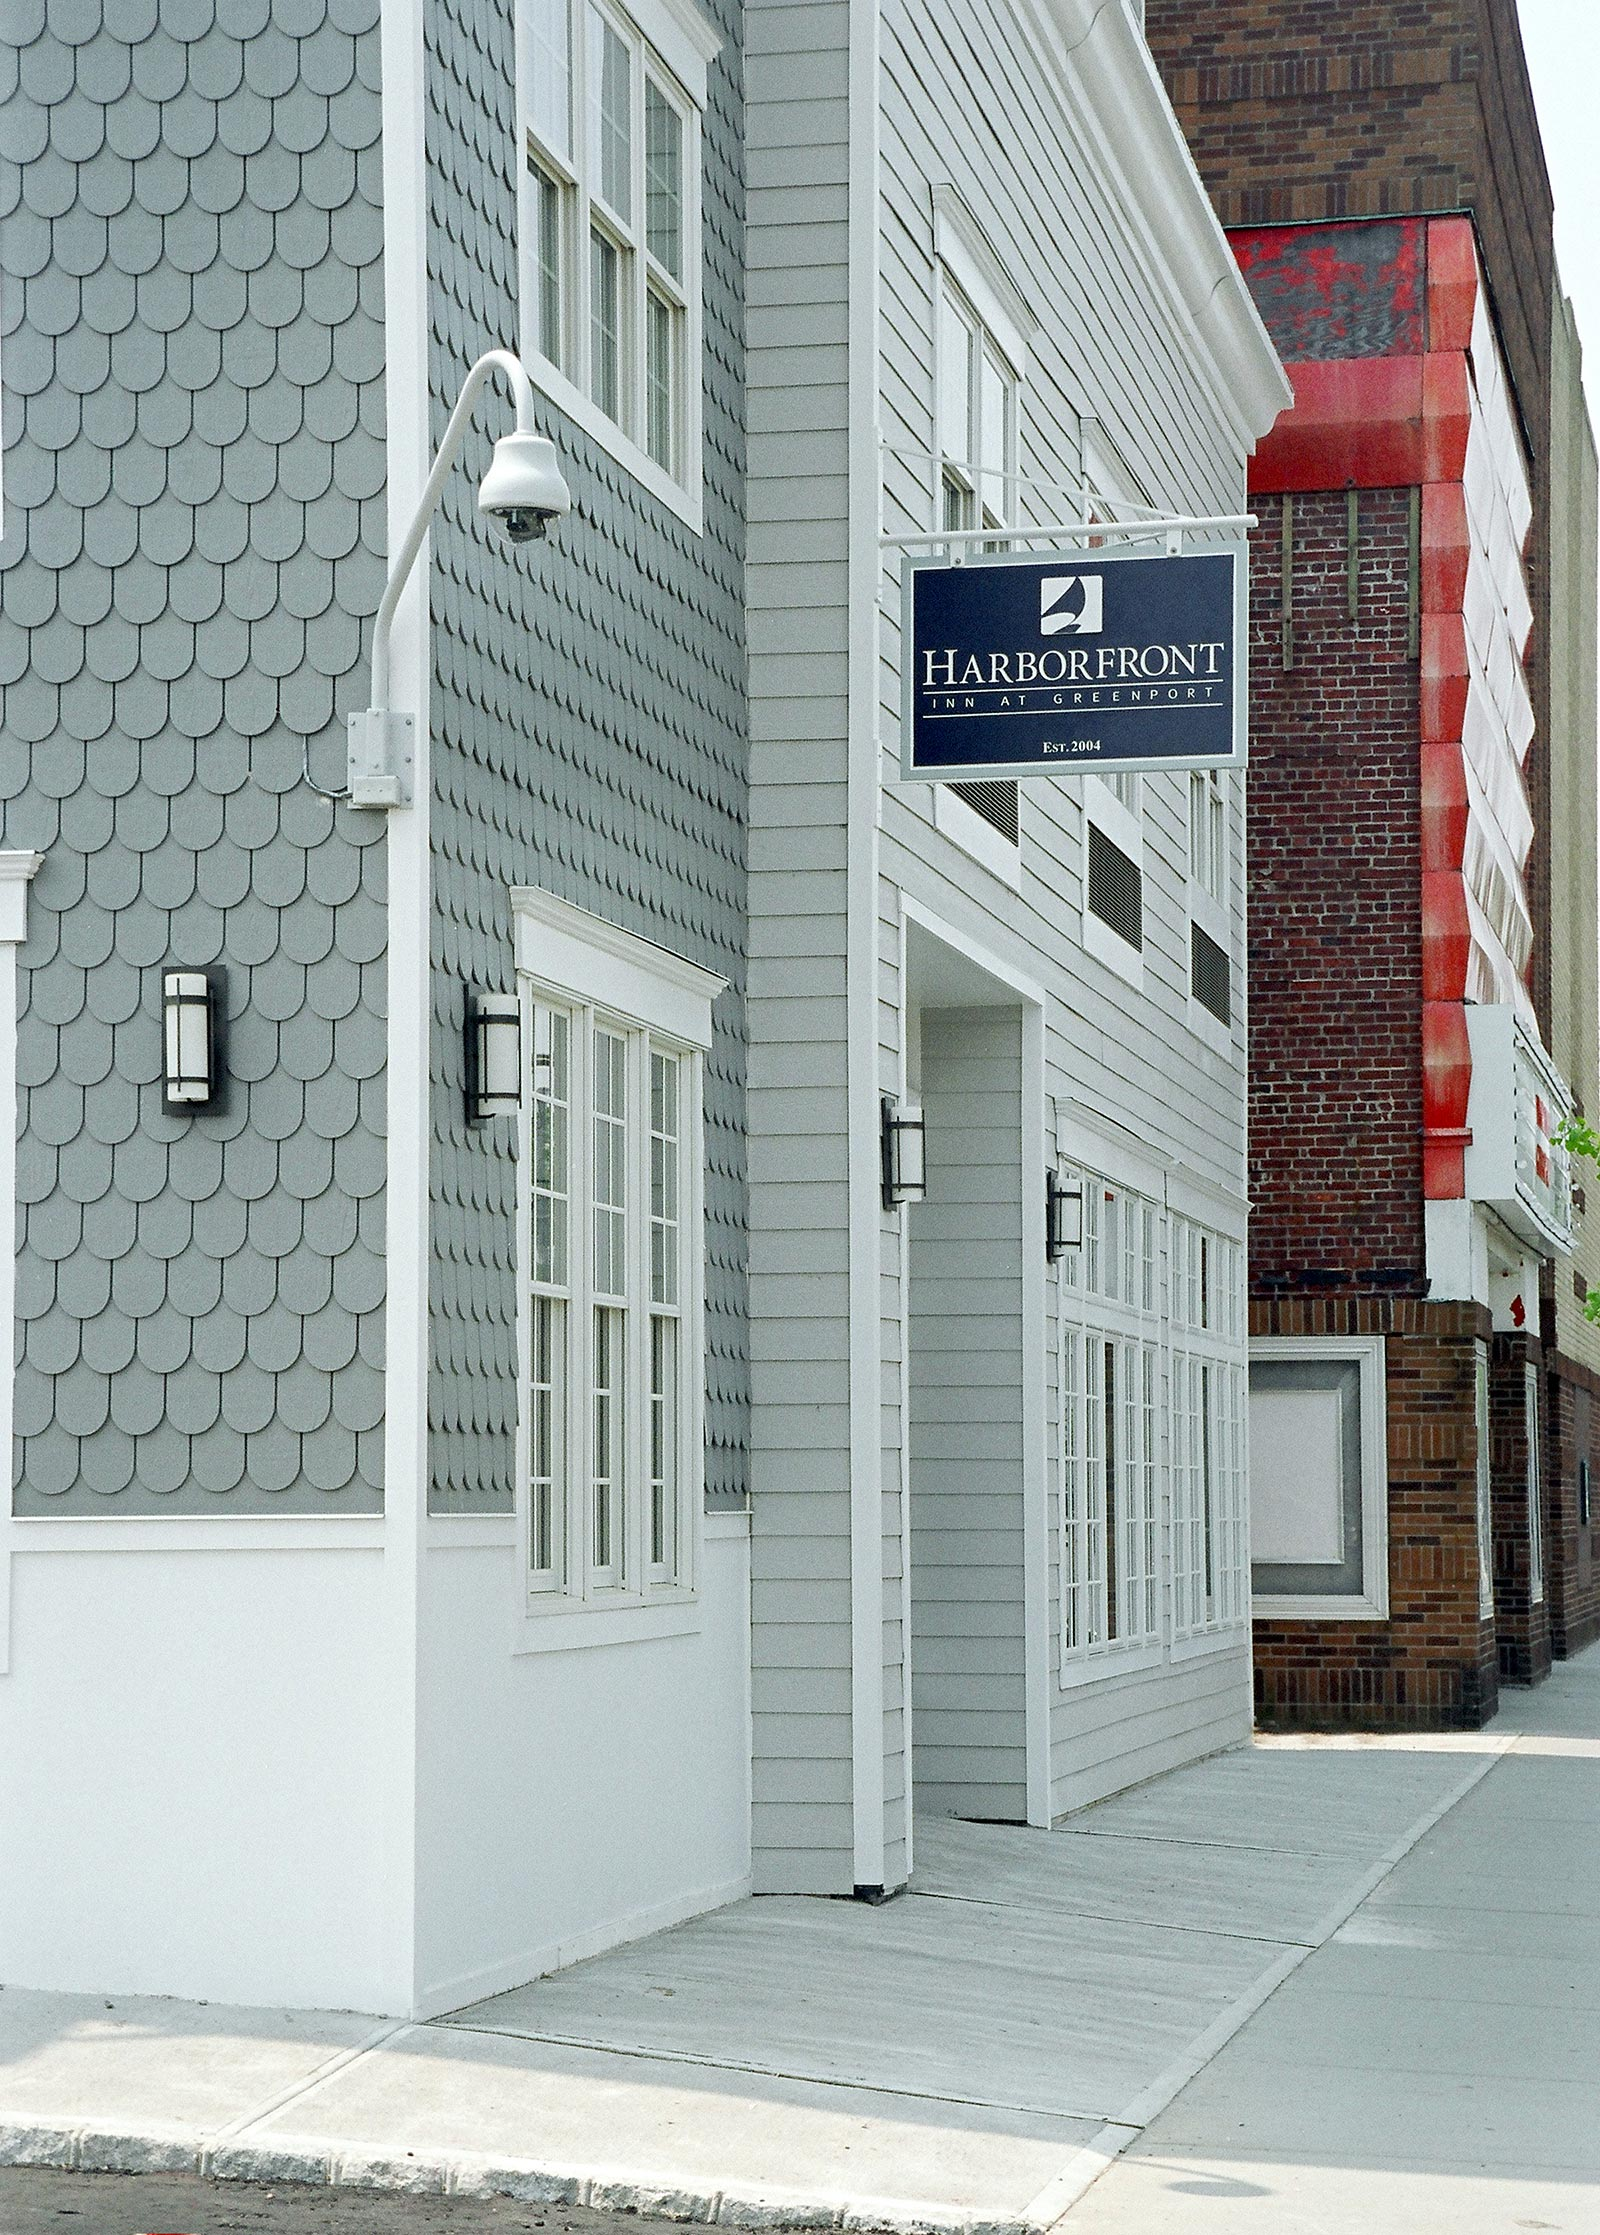 Side View of Harborfront Inn building